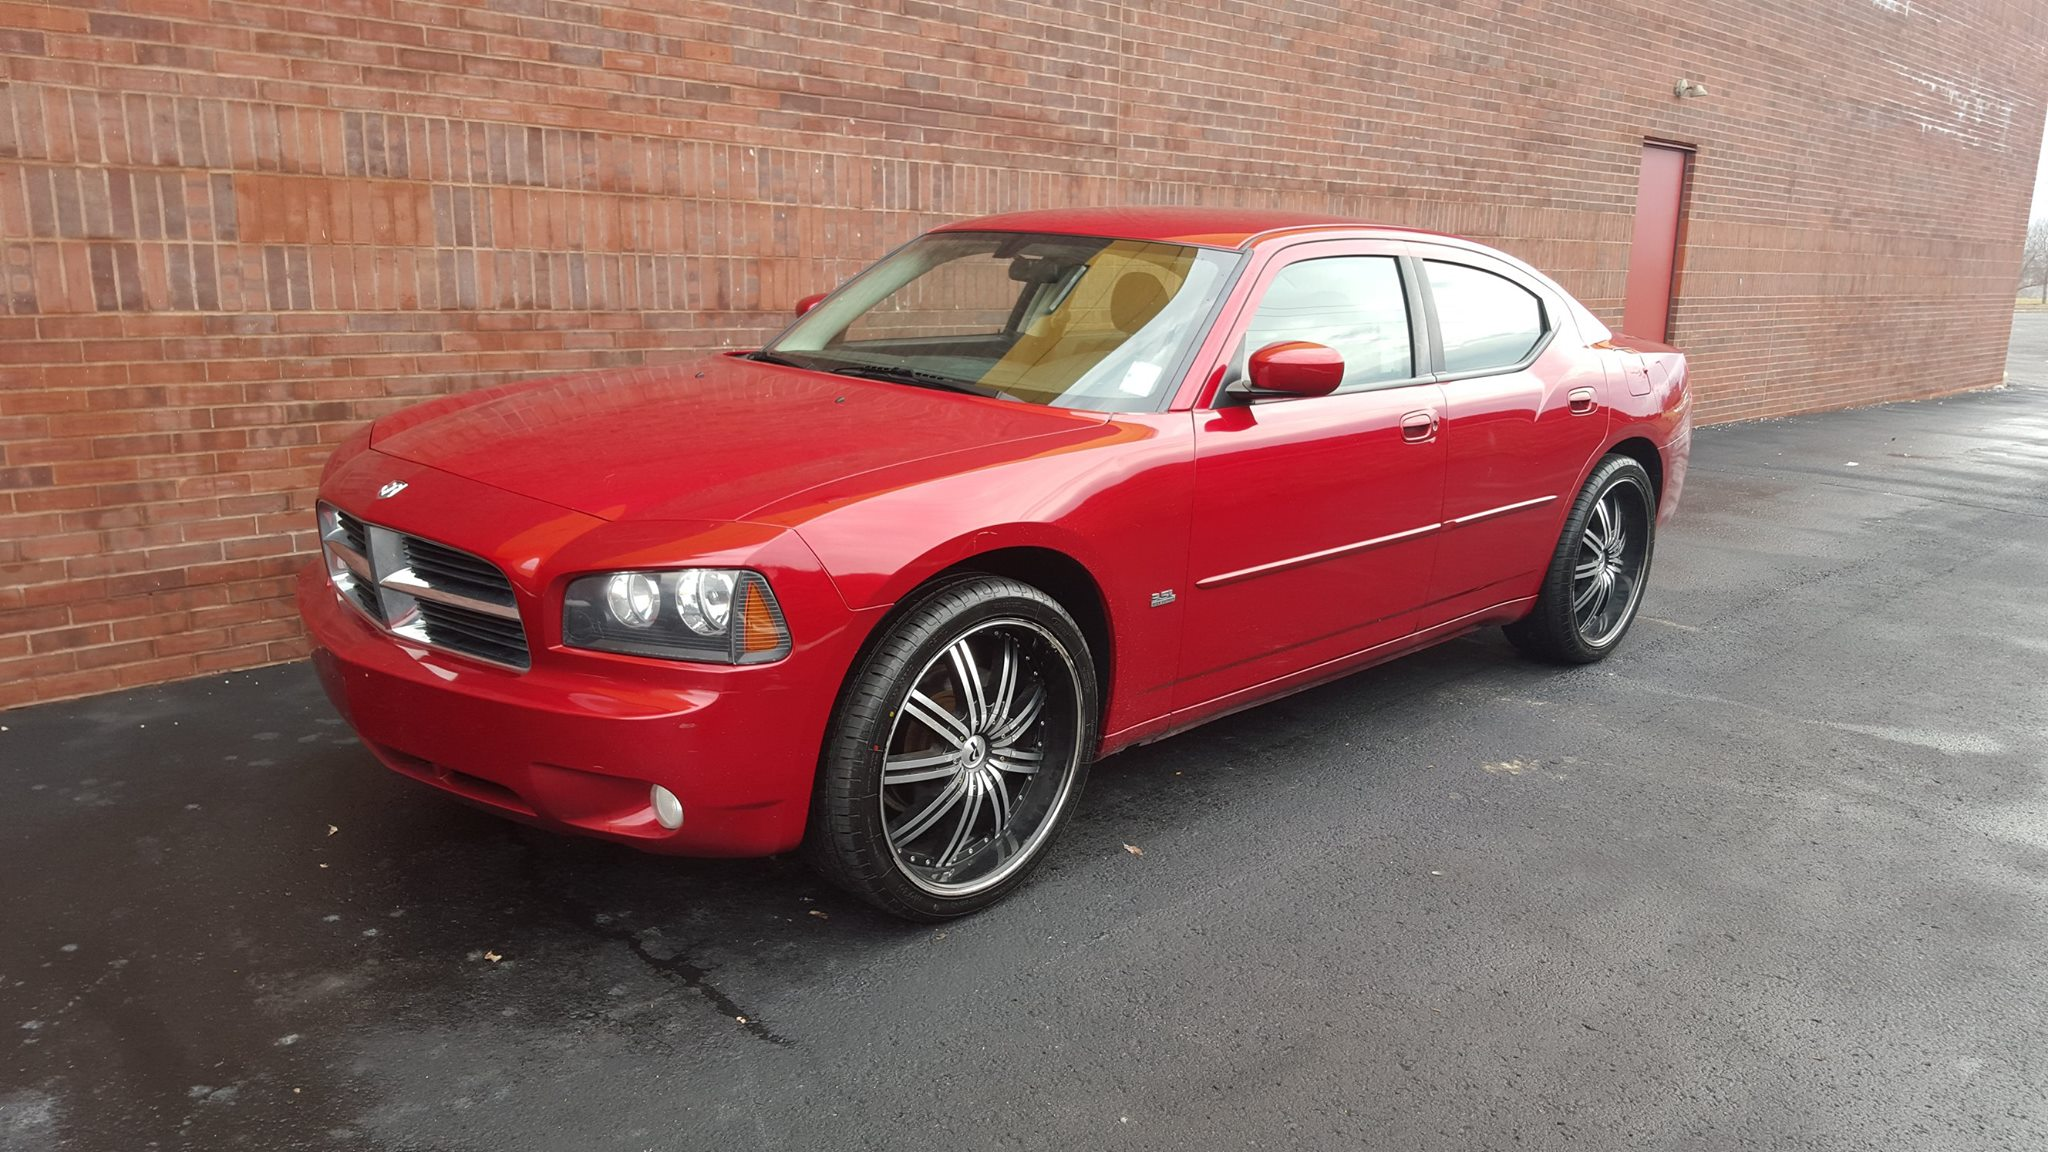 sn t owned image vin engine state gas a charger dodge